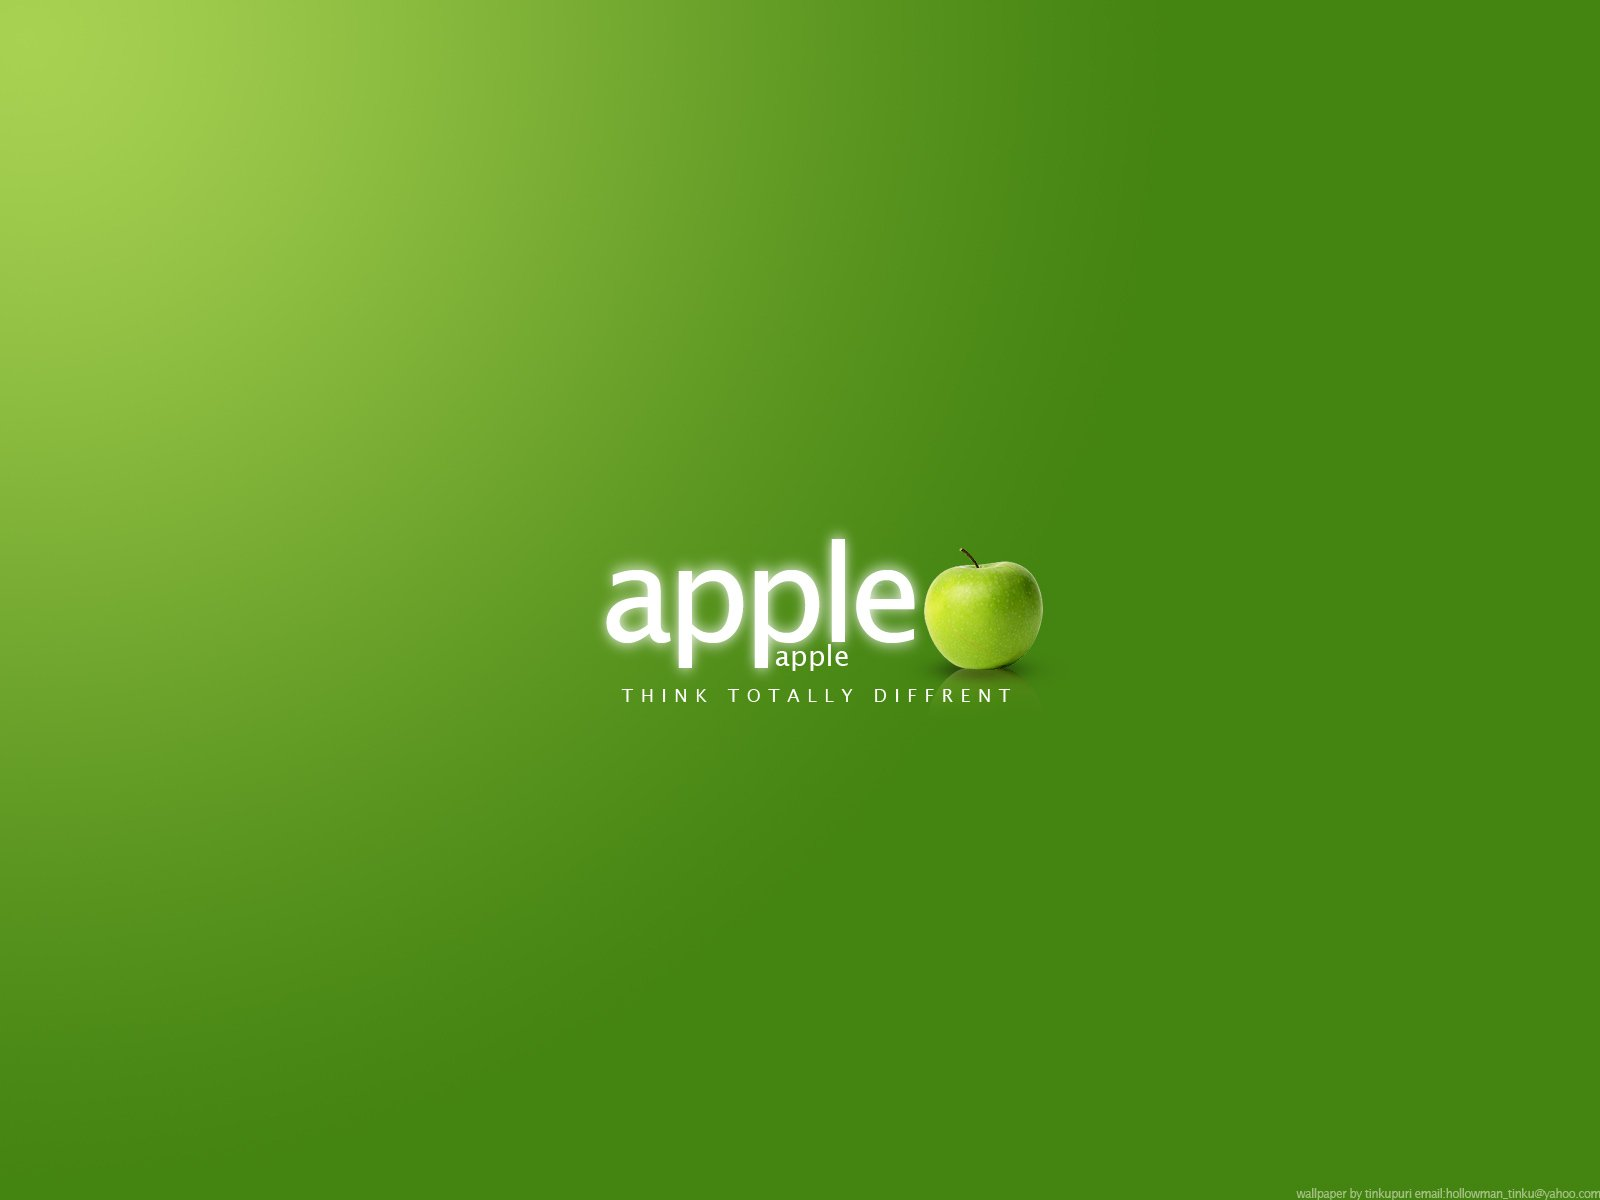 think different apple wallpapers - Think different! Put a cool Apple Wallpaper on your desktop